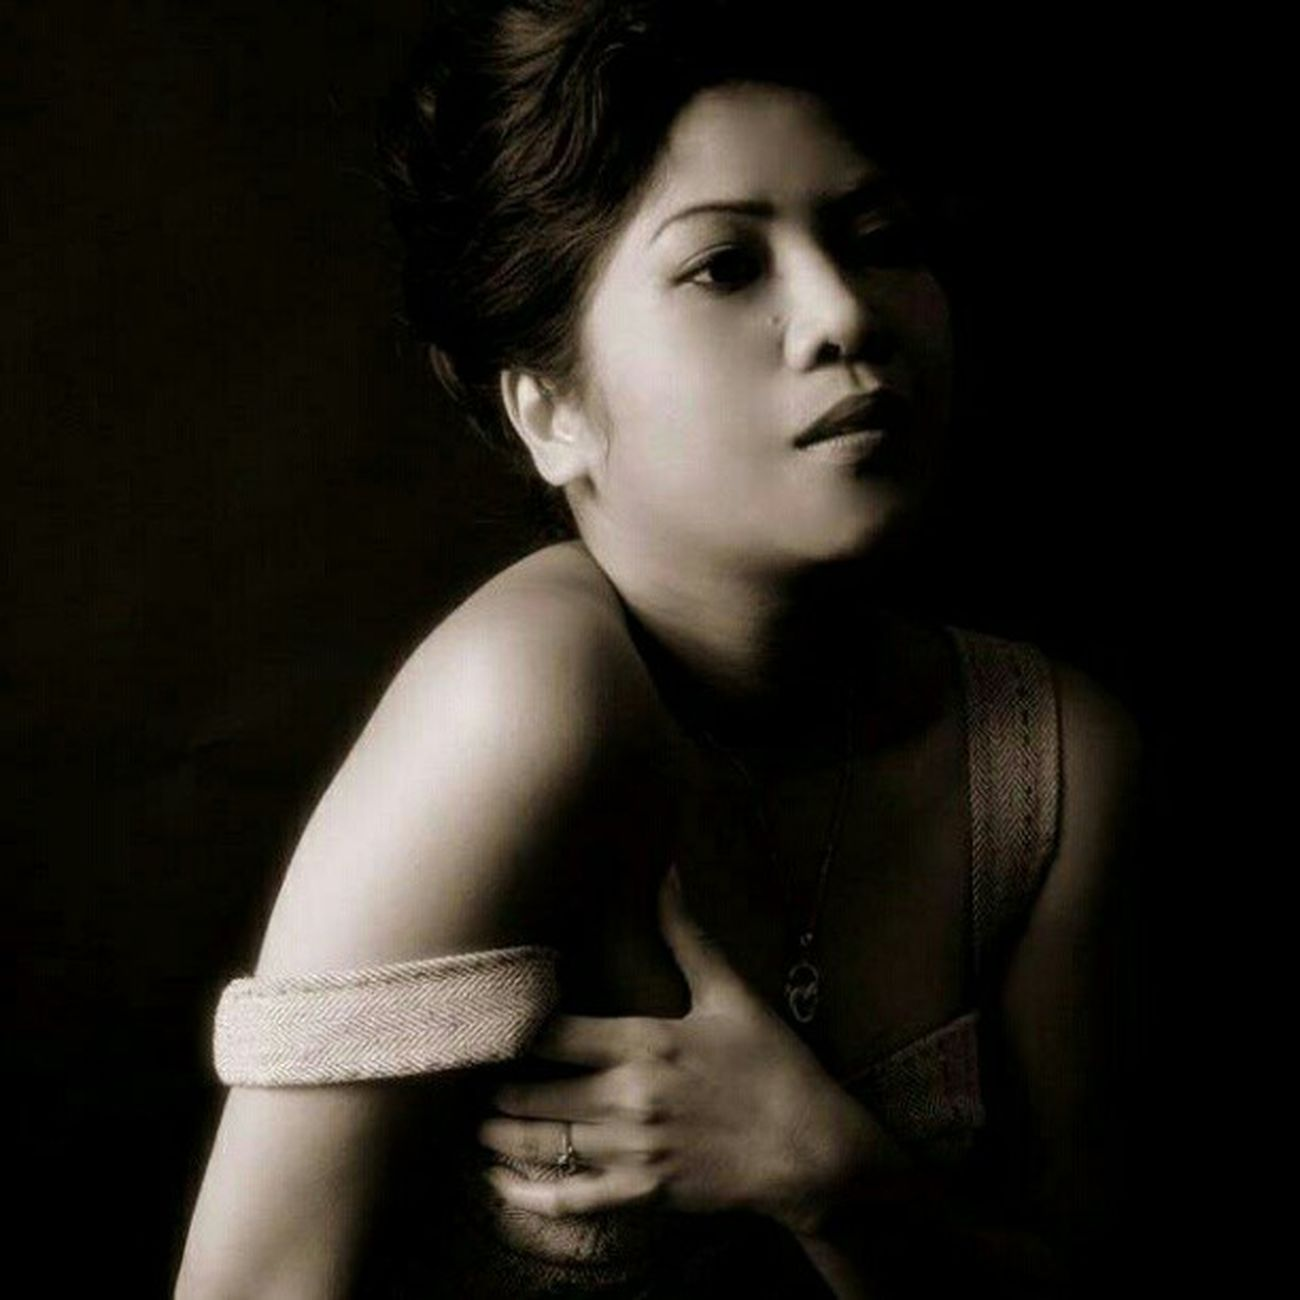 By Paul Le Roy Modeling Blackandwhite Splitlighting Photographyoftheday photography photographylover